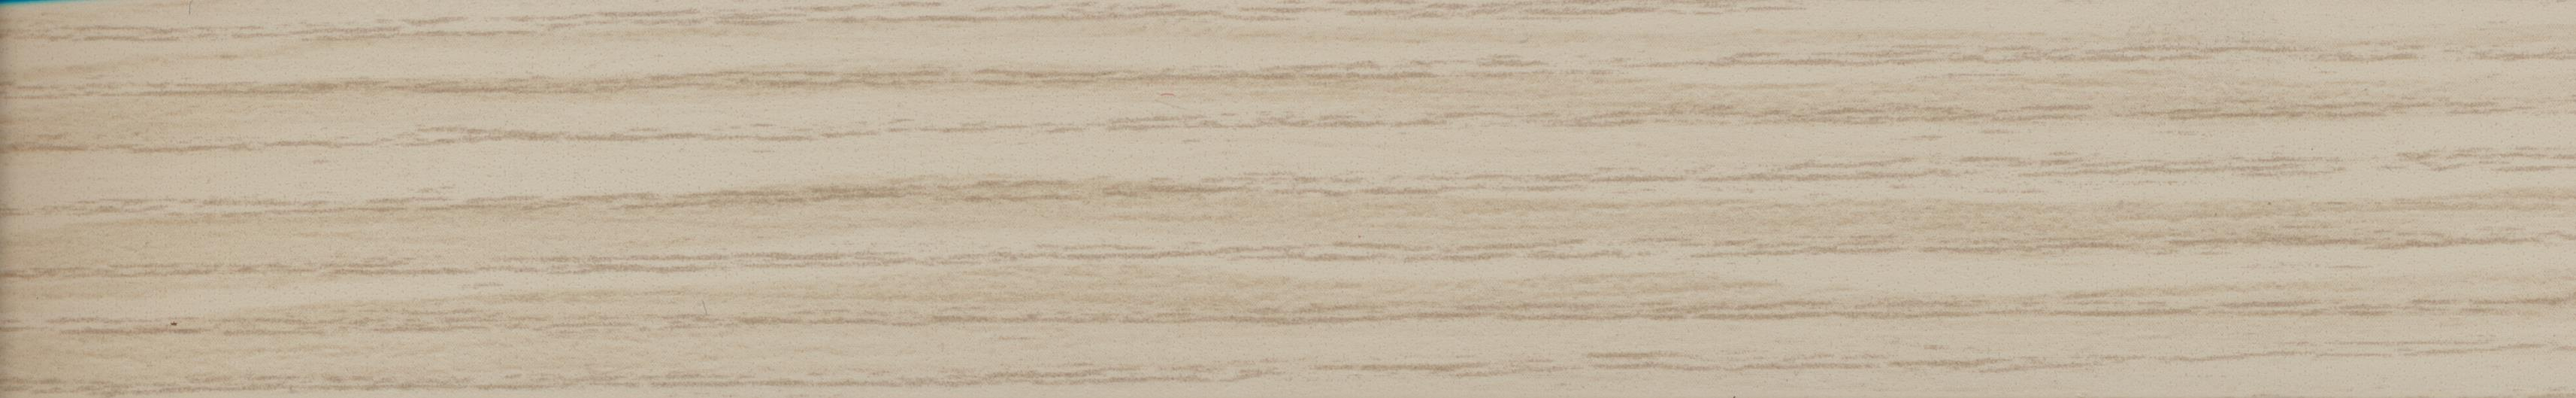 ARAUCO WF450:BERGEN ASH 15/16x1mm CP21043 EMB LAC 600' CO